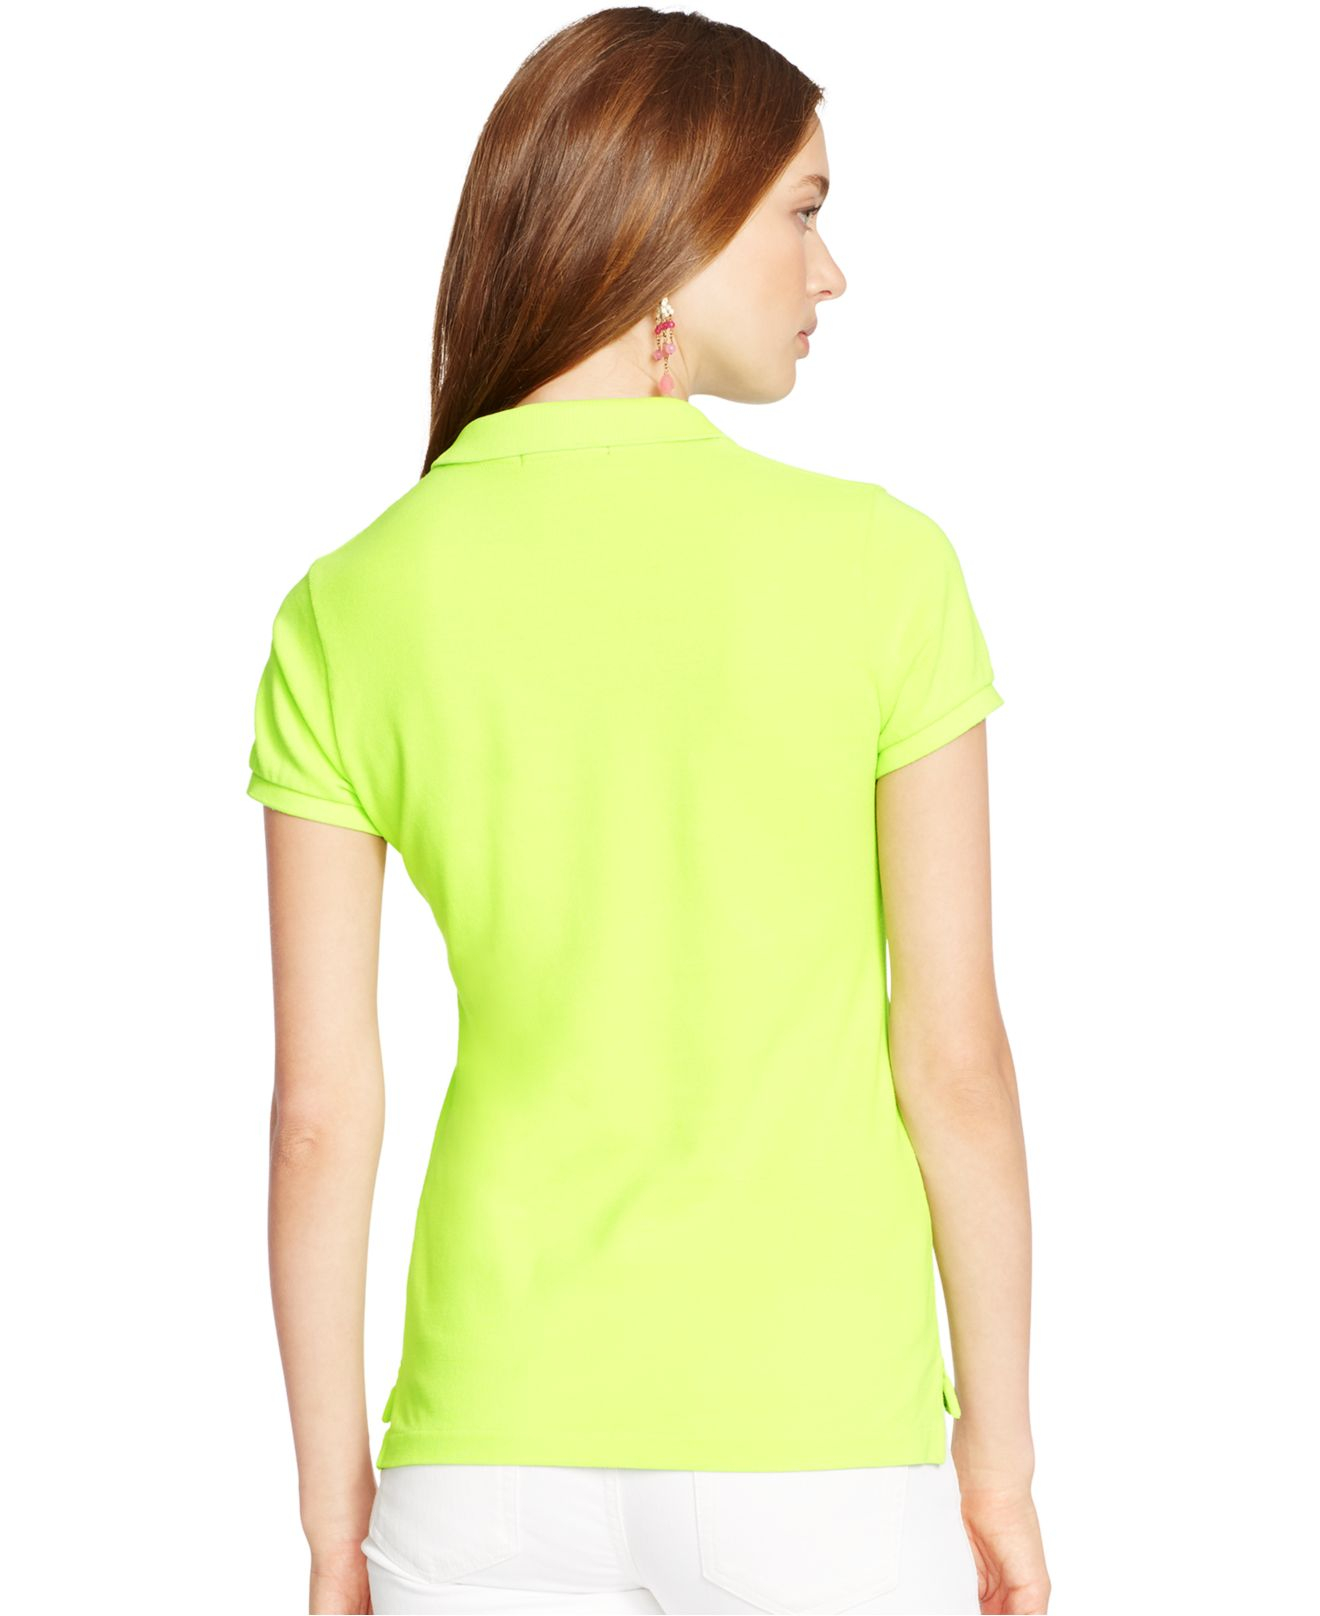 polo ralph lauren slim fit big pony polo shirt in green. Black Bedroom Furniture Sets. Home Design Ideas